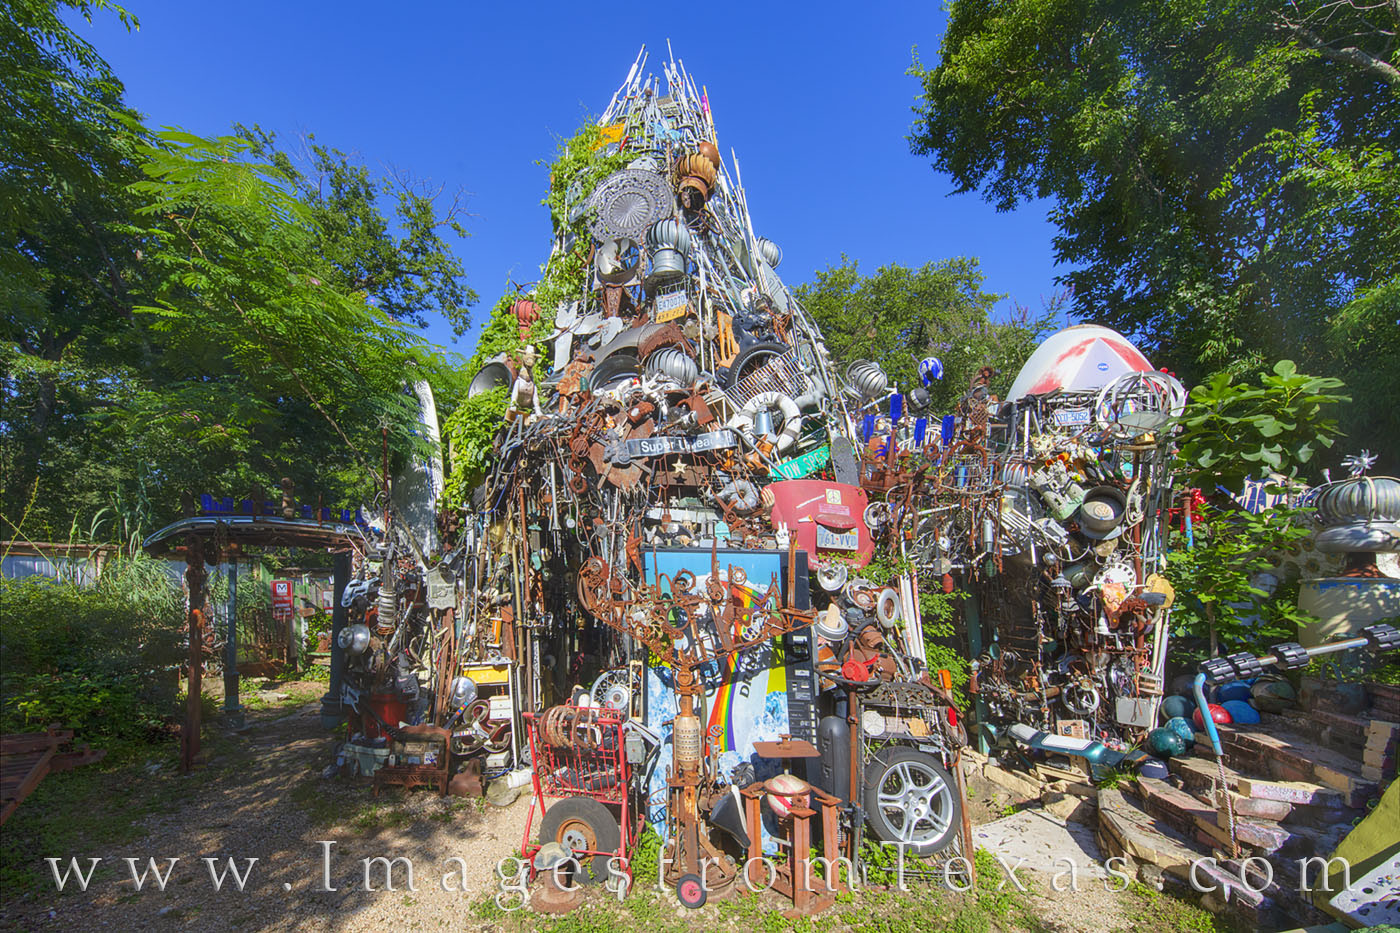 cathedral of junk, austin icons, austin texas, south austin, weird, unusual, sightseeing, photo